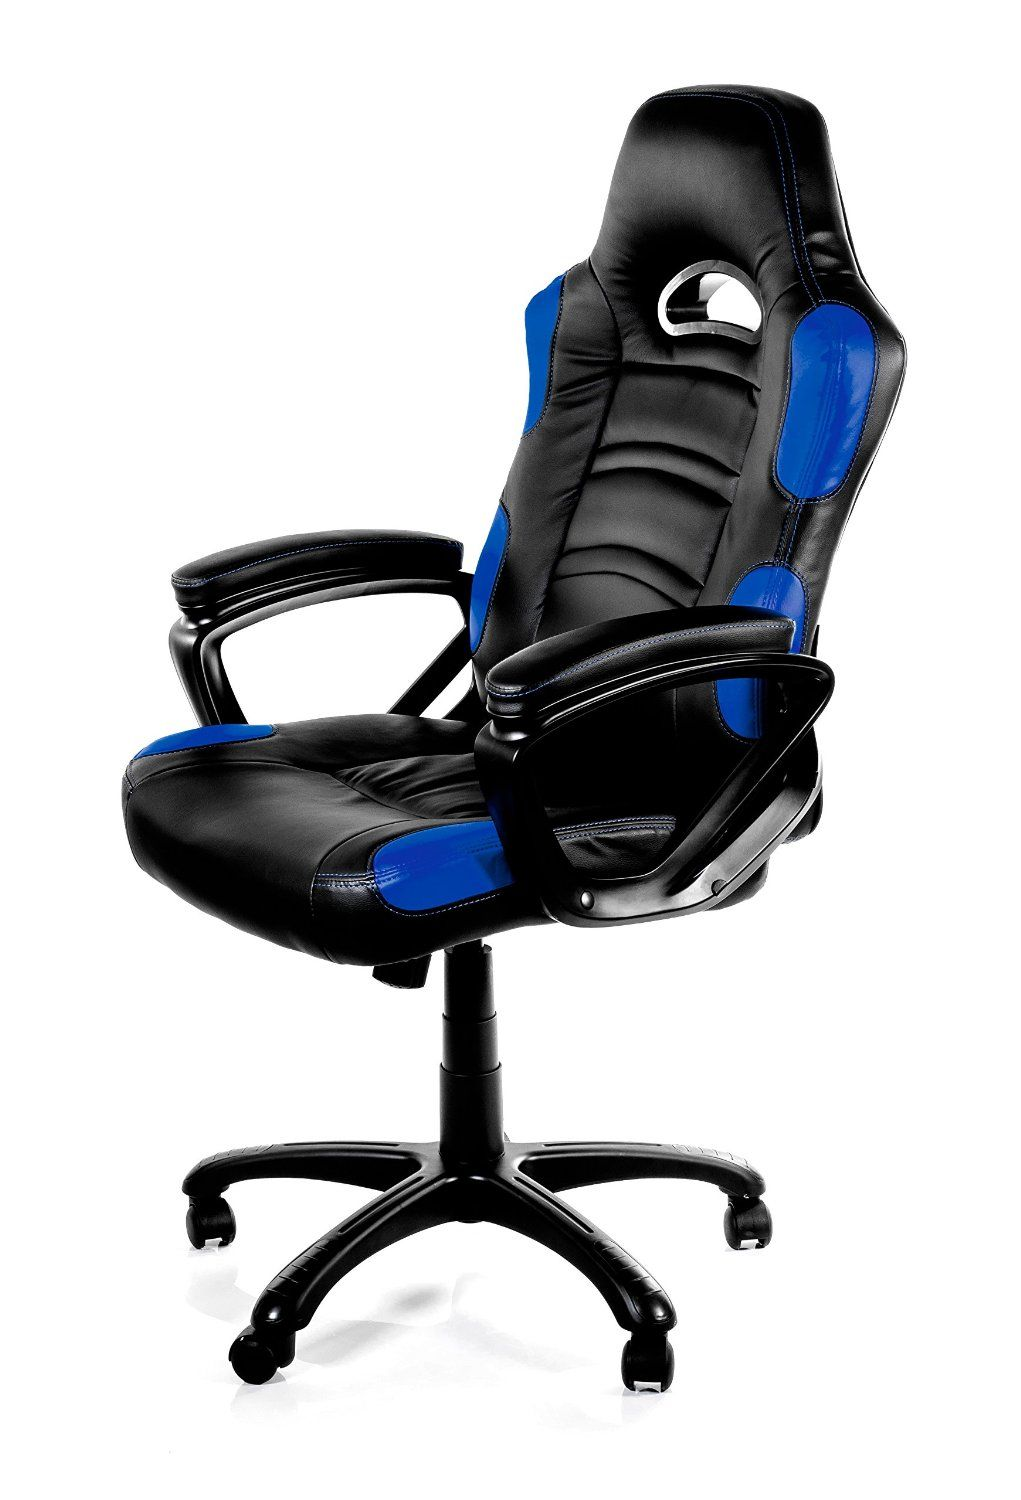 AmazonSmile Arozzi Enzo Series Gaming Racing Style Swivel Chair